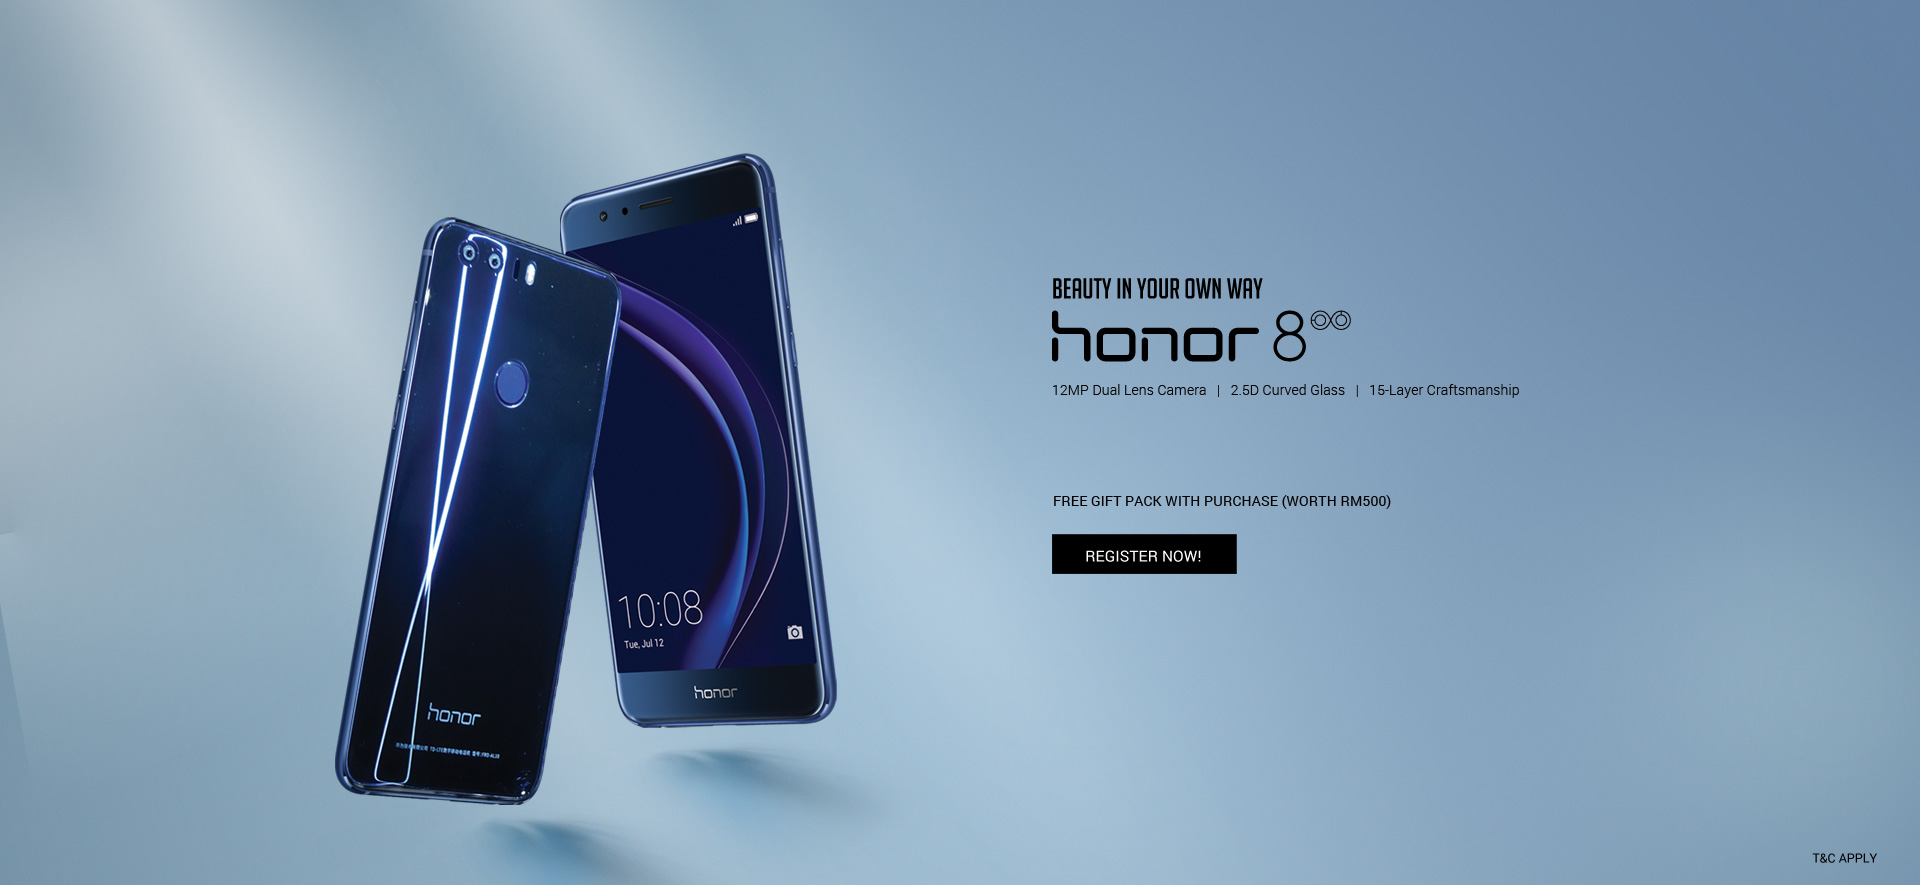 Get Your Honor 8 On The 8th!